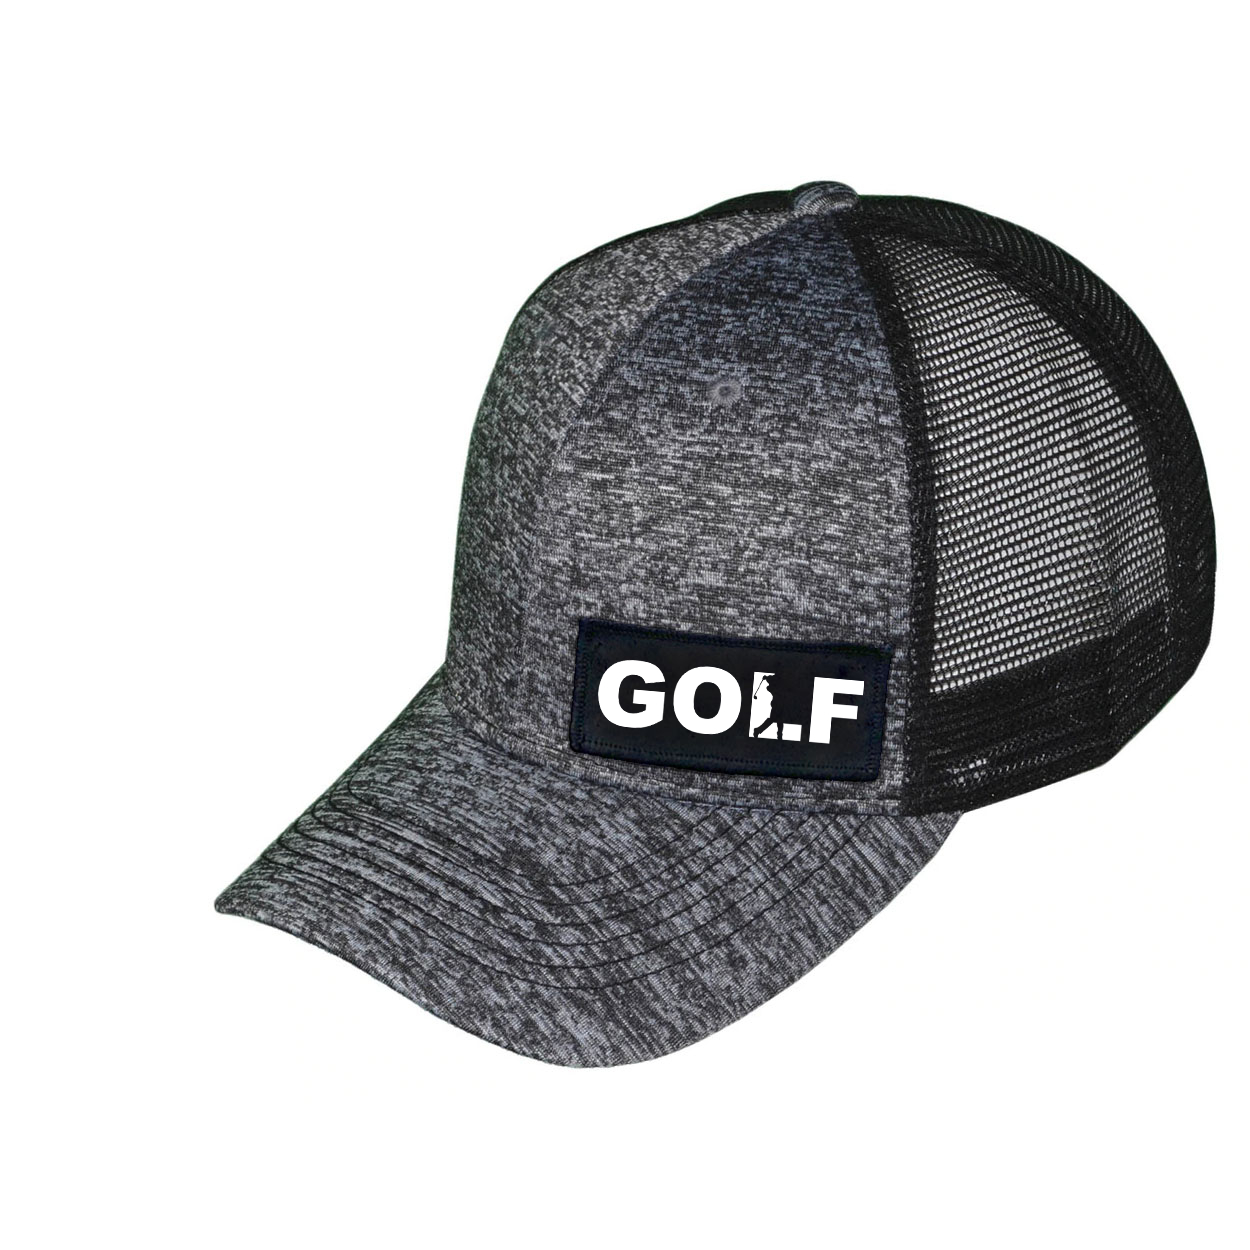 Golf Swing Logo Night Out Woven Patch Melange Snapback Trucker Hat Gray/Black (White Logo)